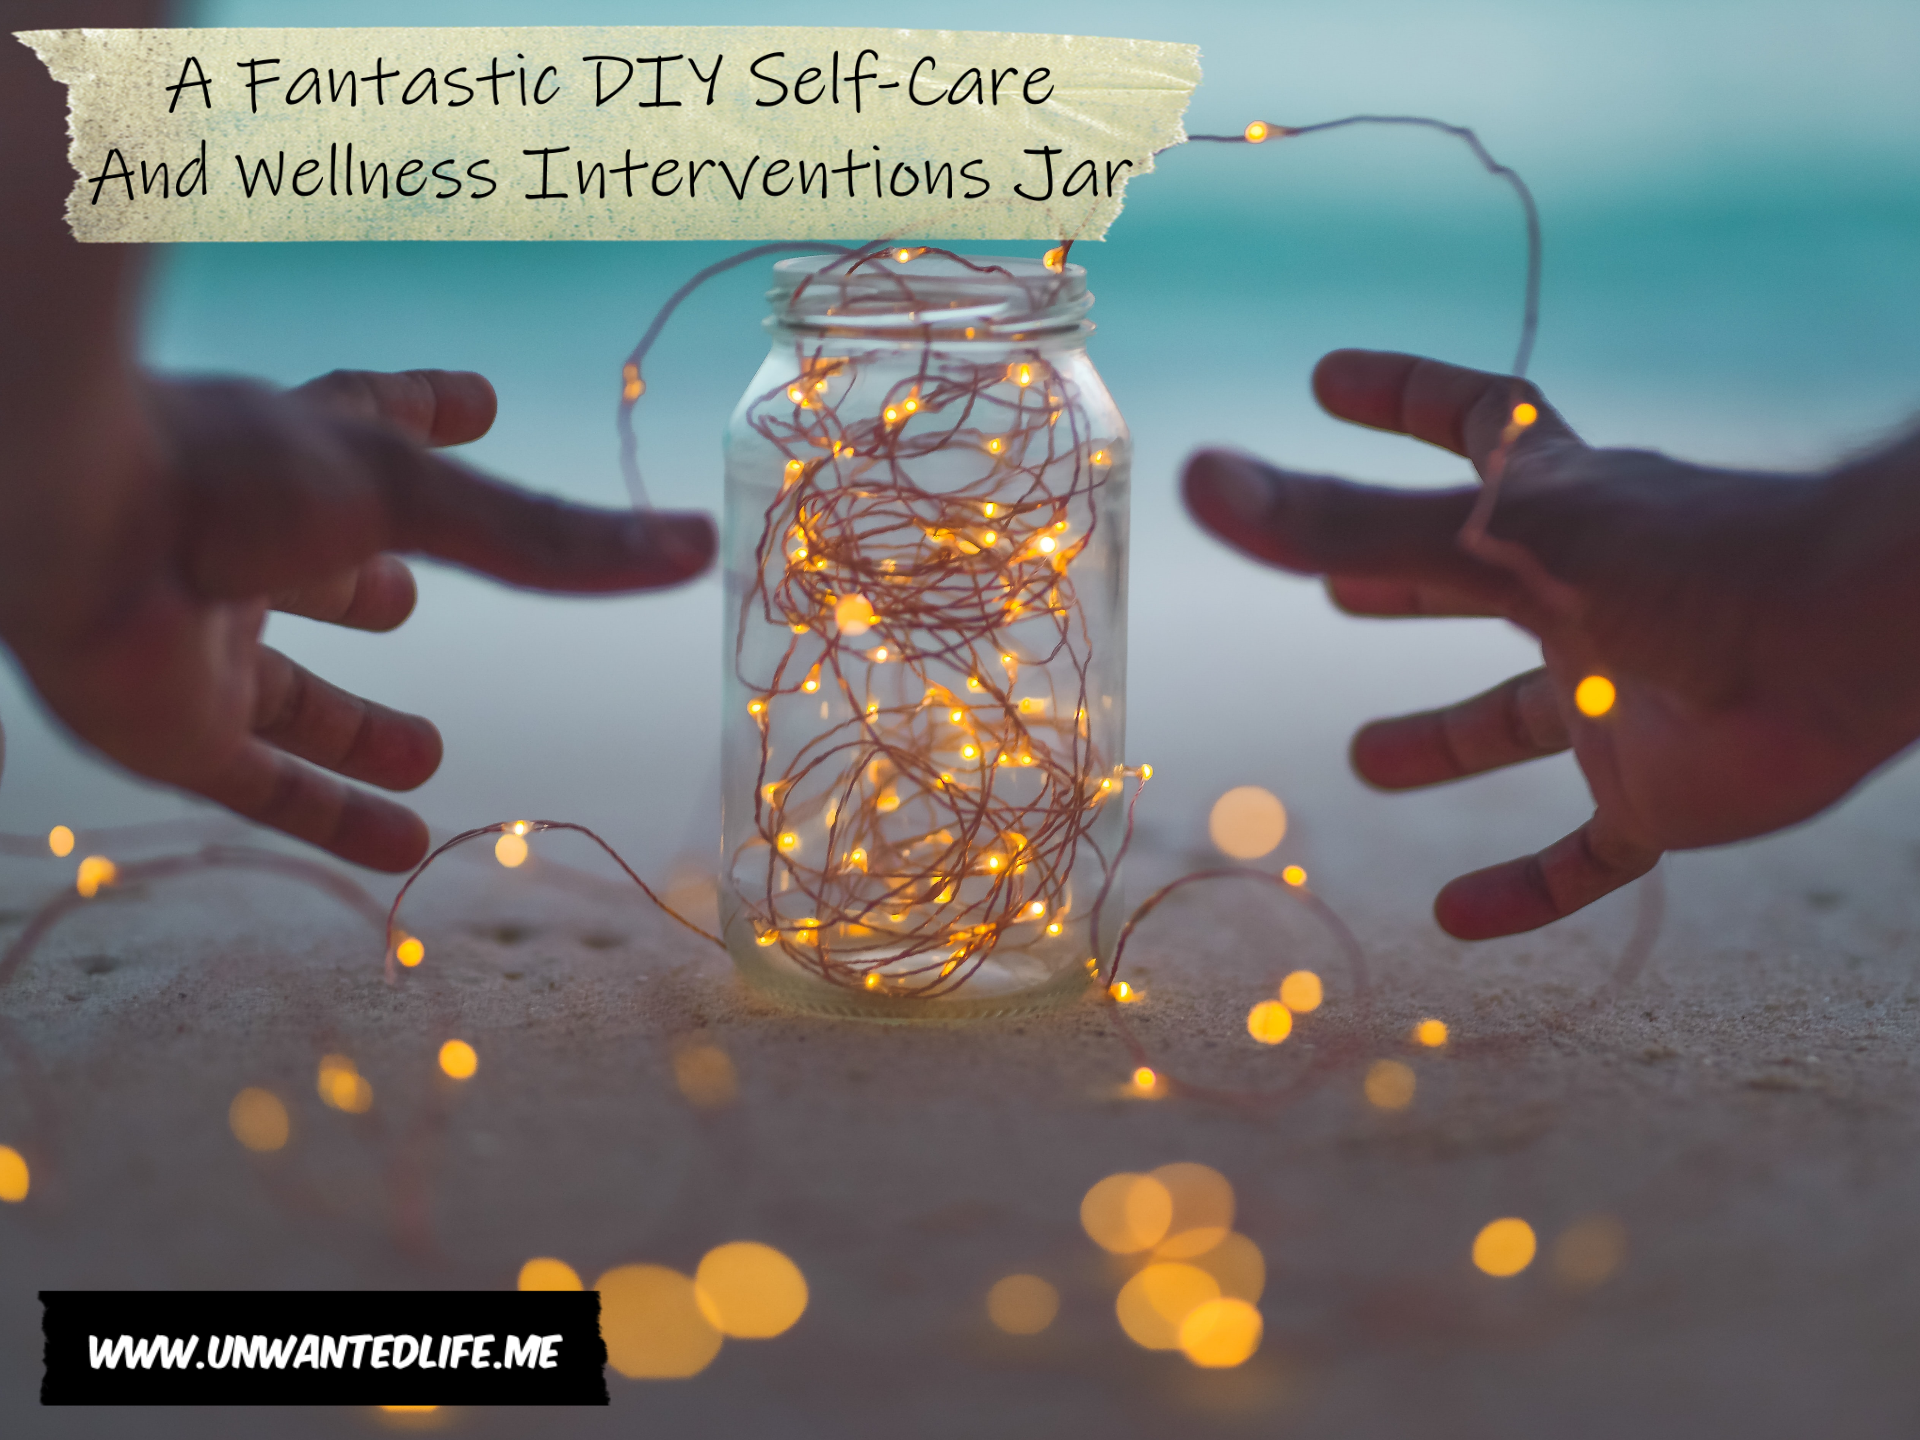 A pair of hands reaching for a jar overflowing with fairy lights to represent A Fantastic DIY Self-Care And Wellness Interventions Jar